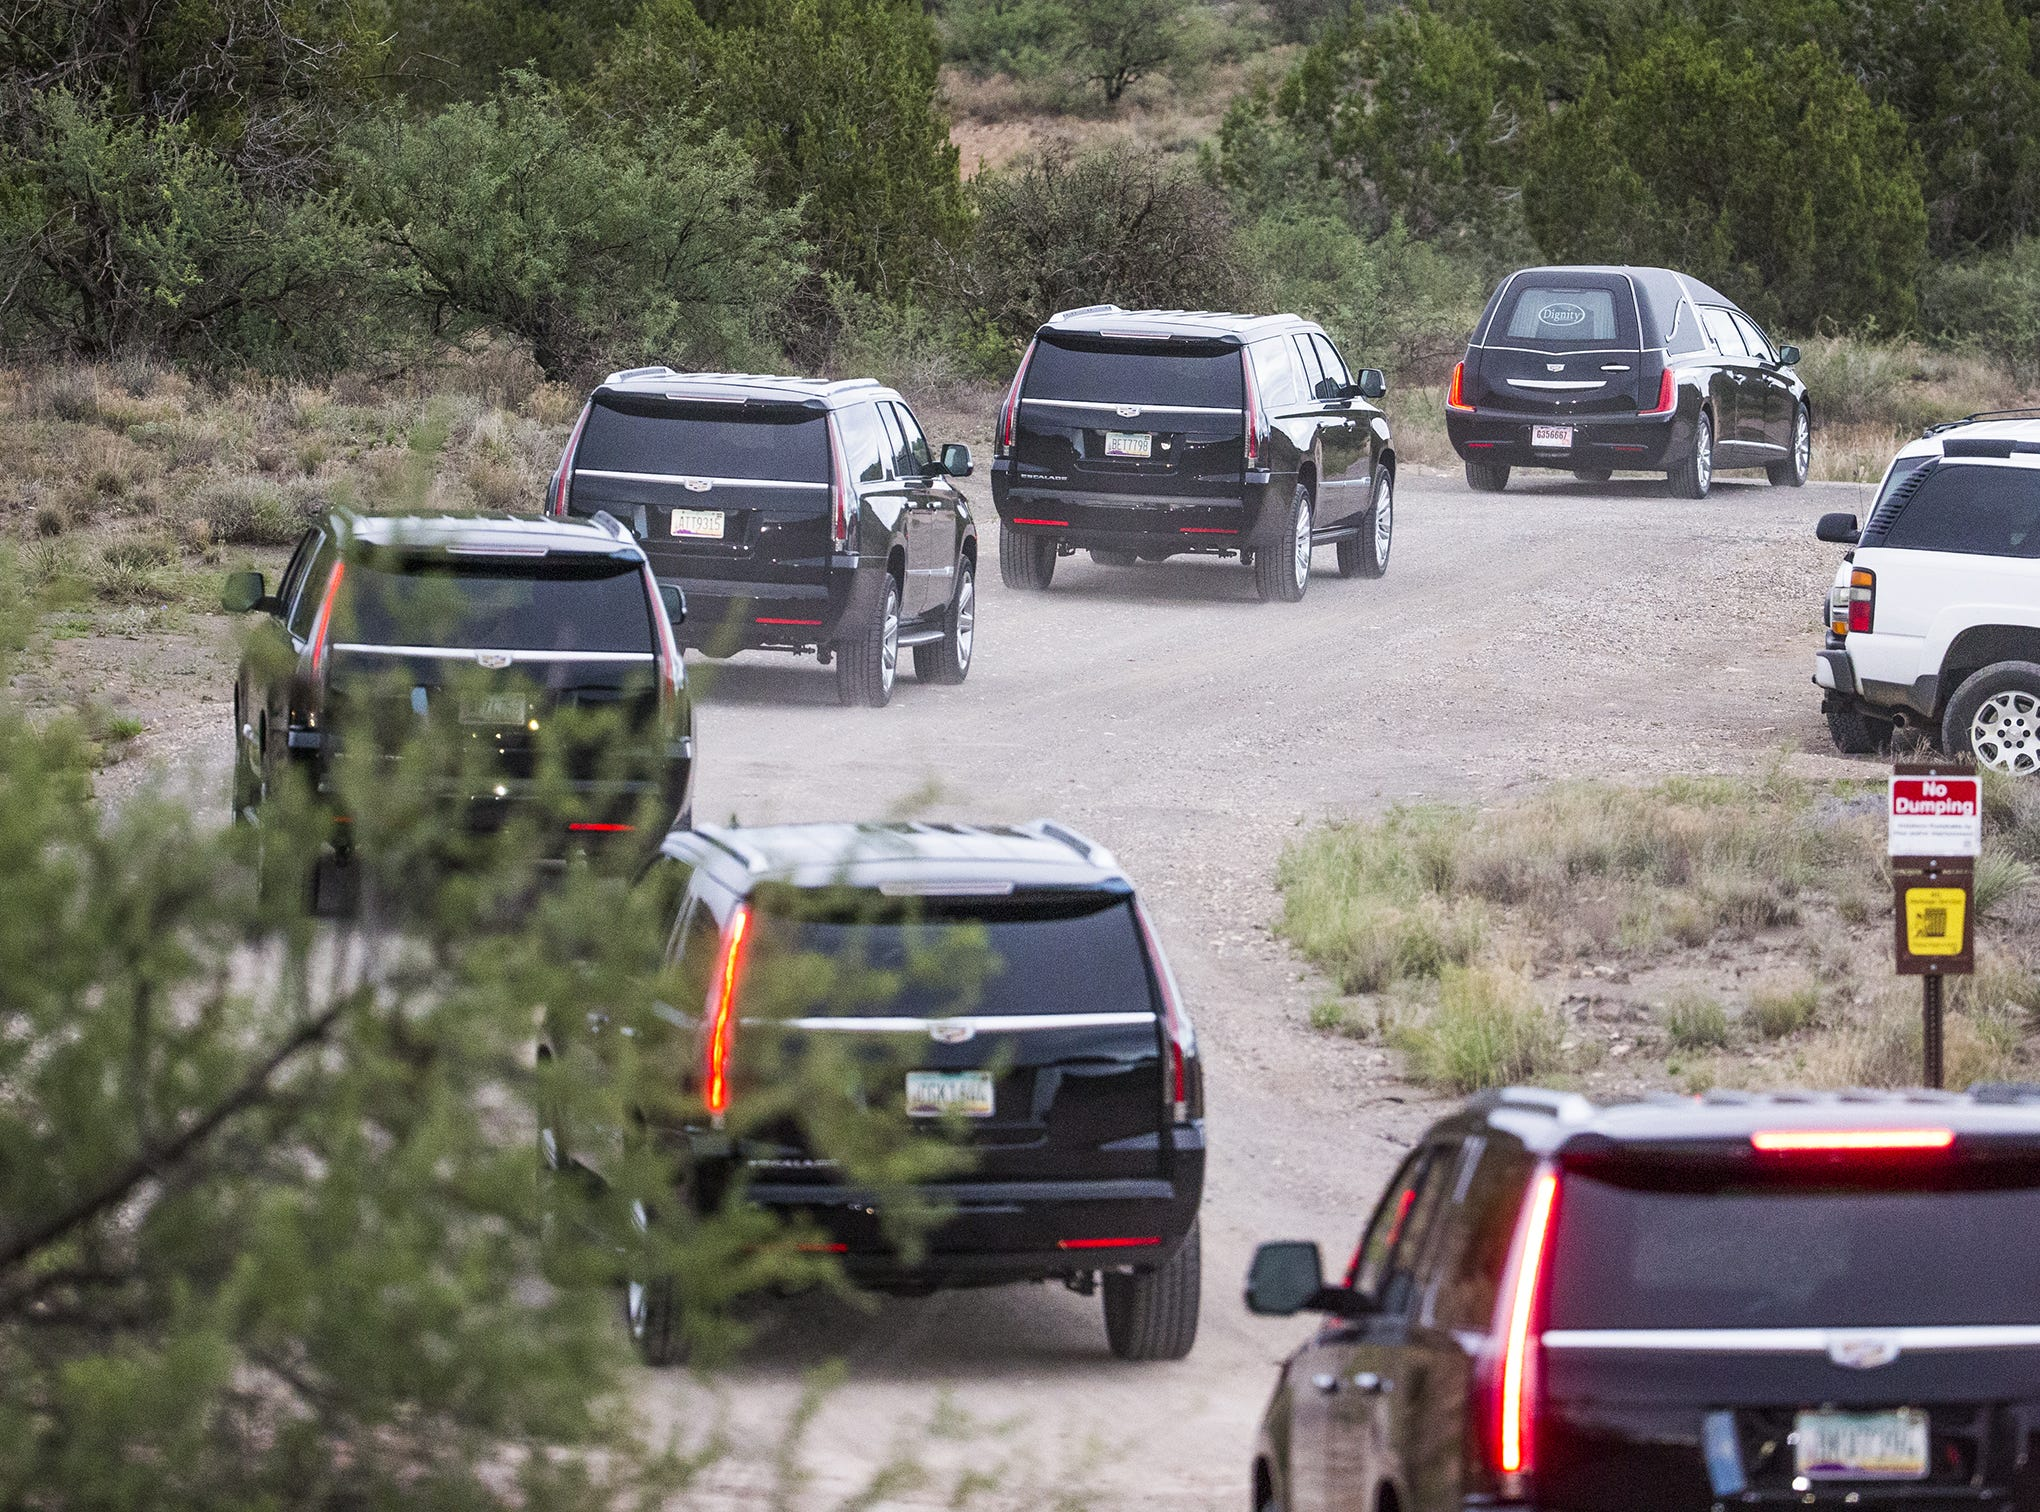 A hearse leads the way up the road to Sen. John McCain's home in Cornville on Aug. 25, 2018.  The road leads to the compound where Sen. John McCain died Saturday.